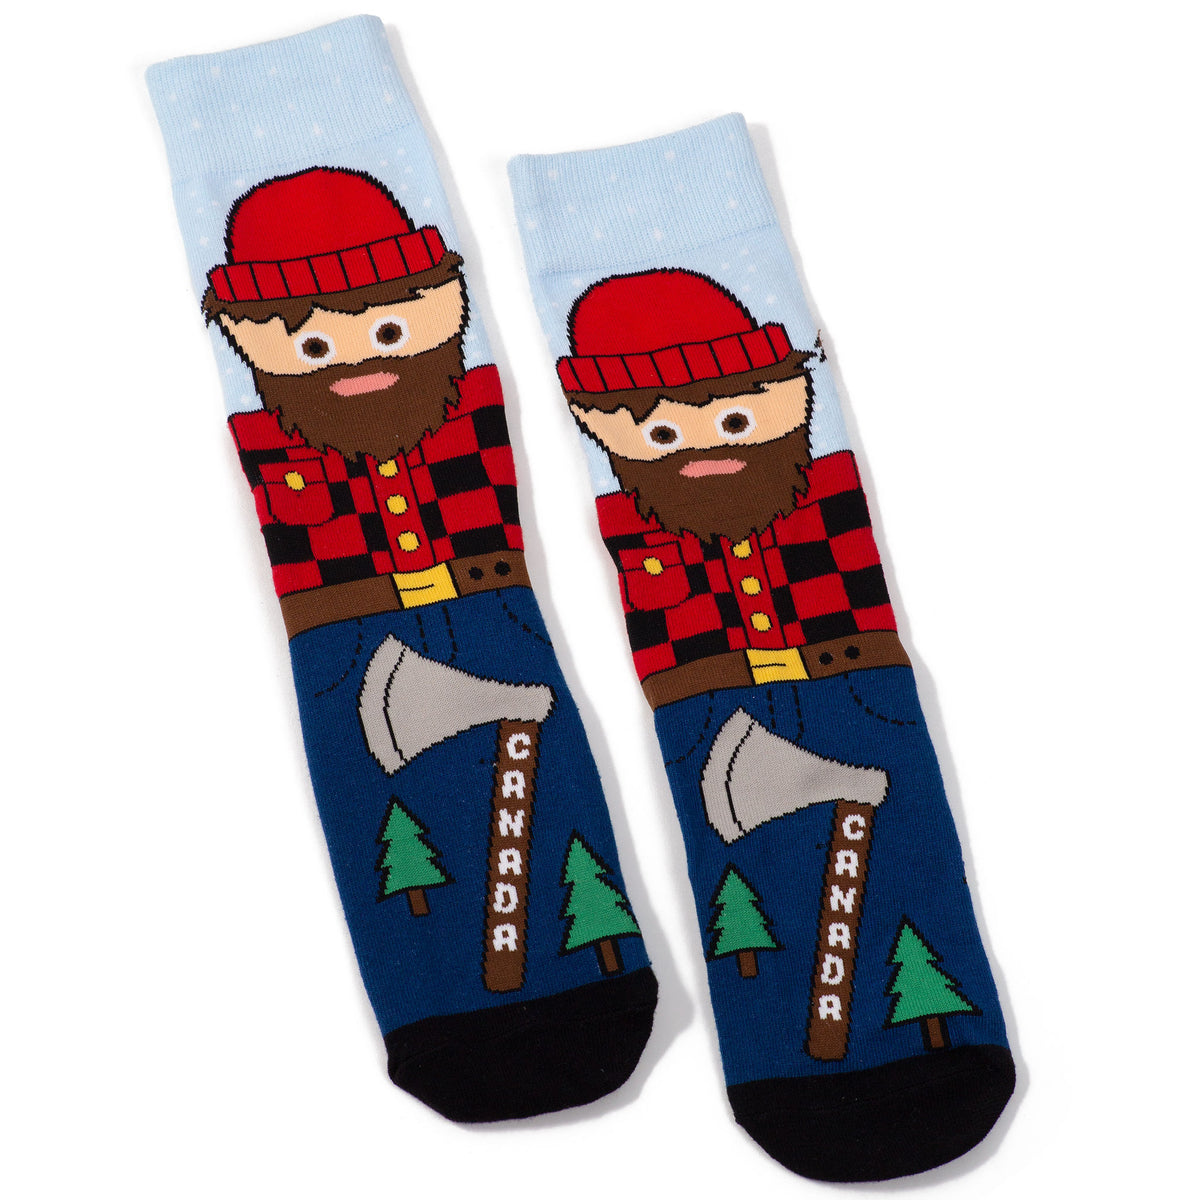 Canadian Lumberjack Socks - Main and Local